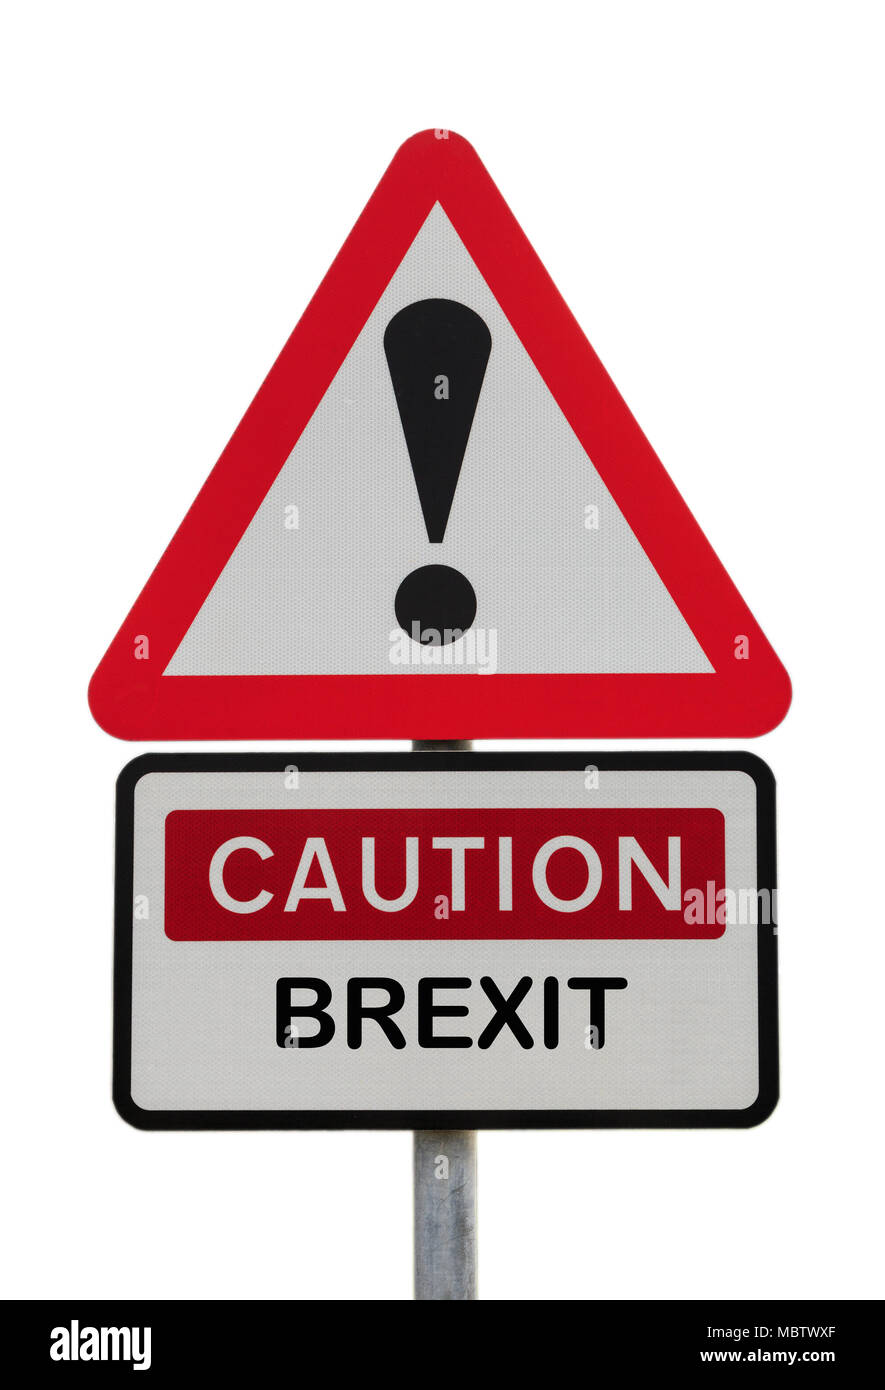 Signe triangulaire Avertissement Attention Brexit avec point d'exclamation pour illustrer l'avenir financier et économique de l'avant le concept. Alsace France Europe Photo Stock